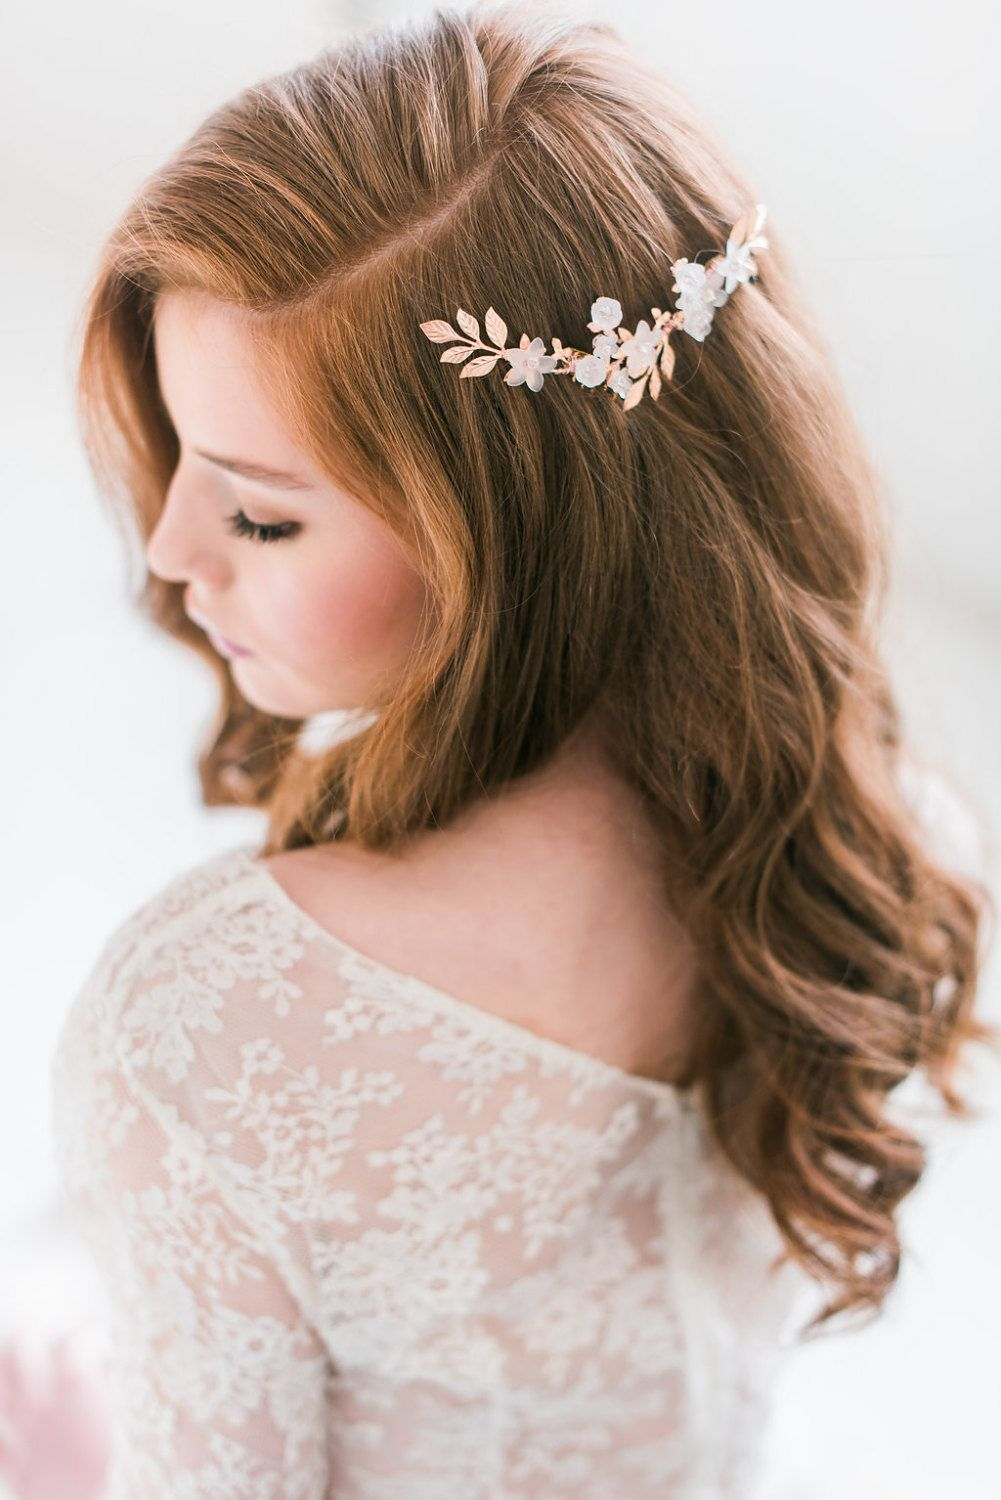 new → tessa kim 2017 bridal hair accessories | bridal hair, hair